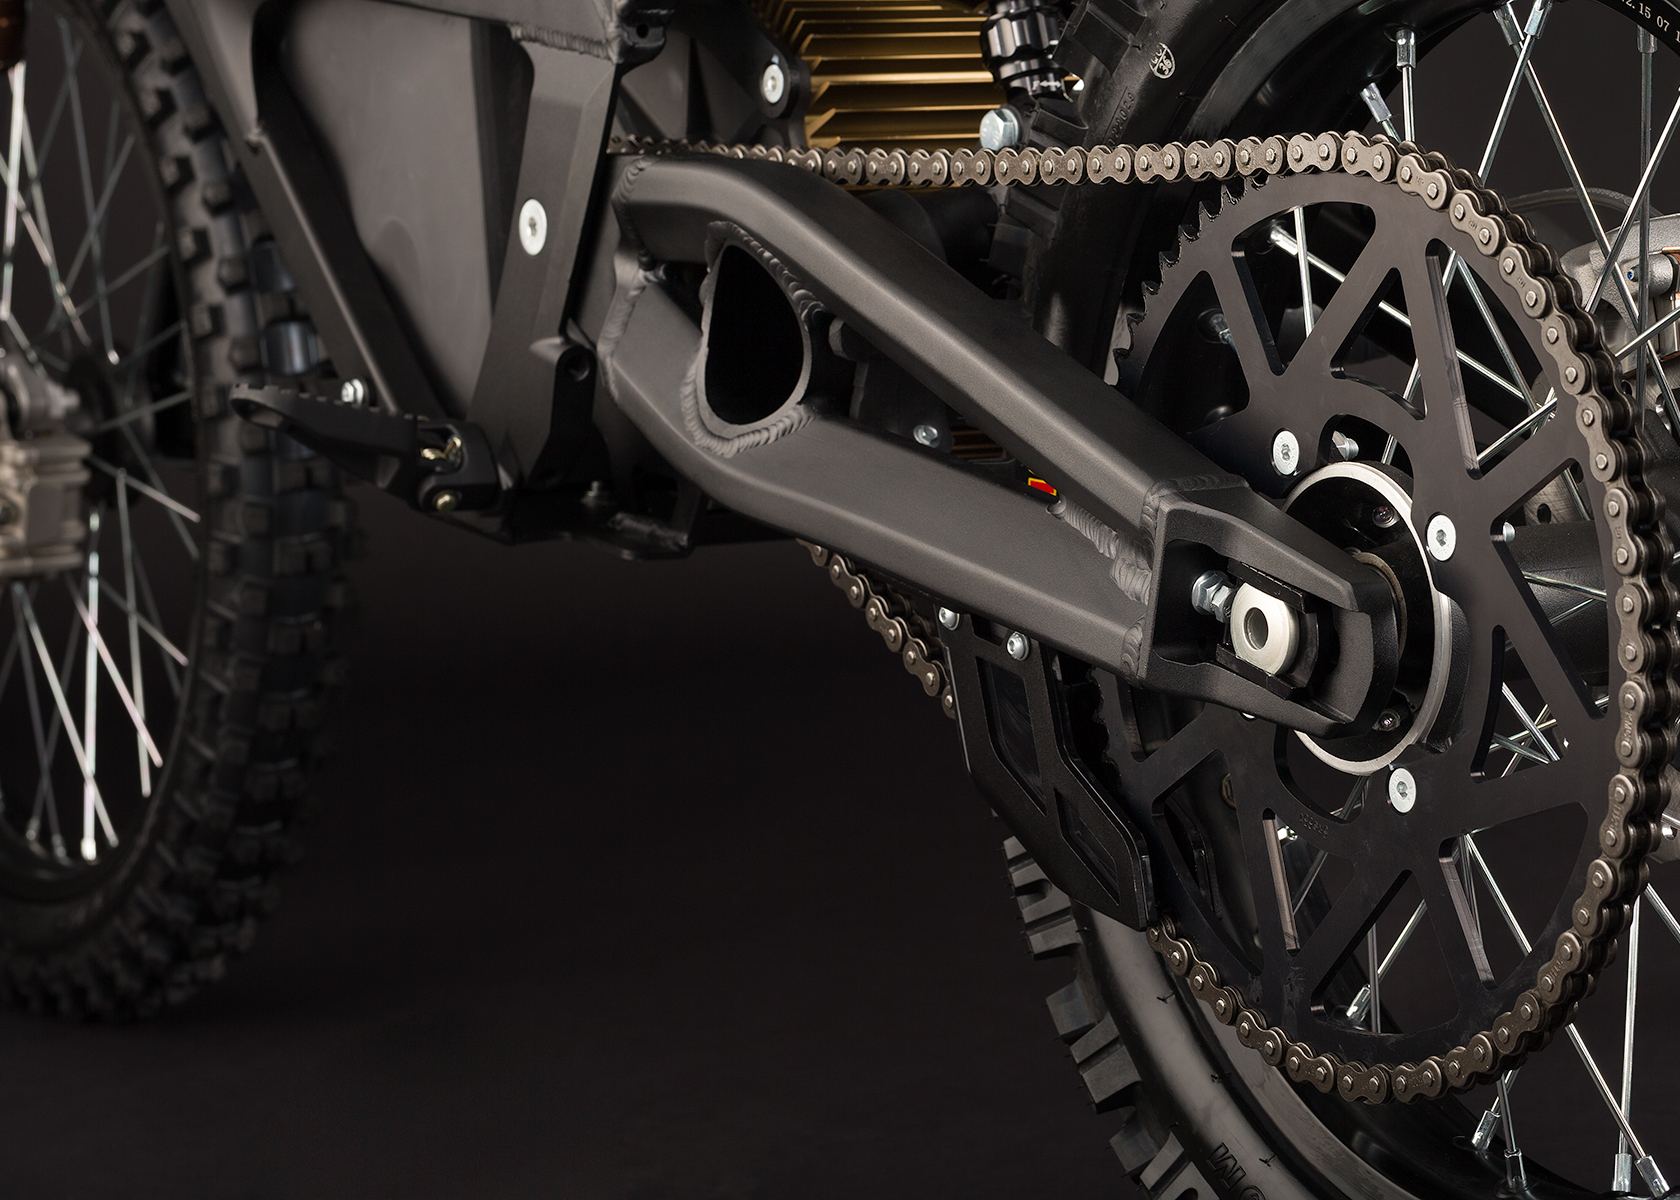 2013 Zero MX Electric Motorcycle: Drivetrain / Chain / Sprocket